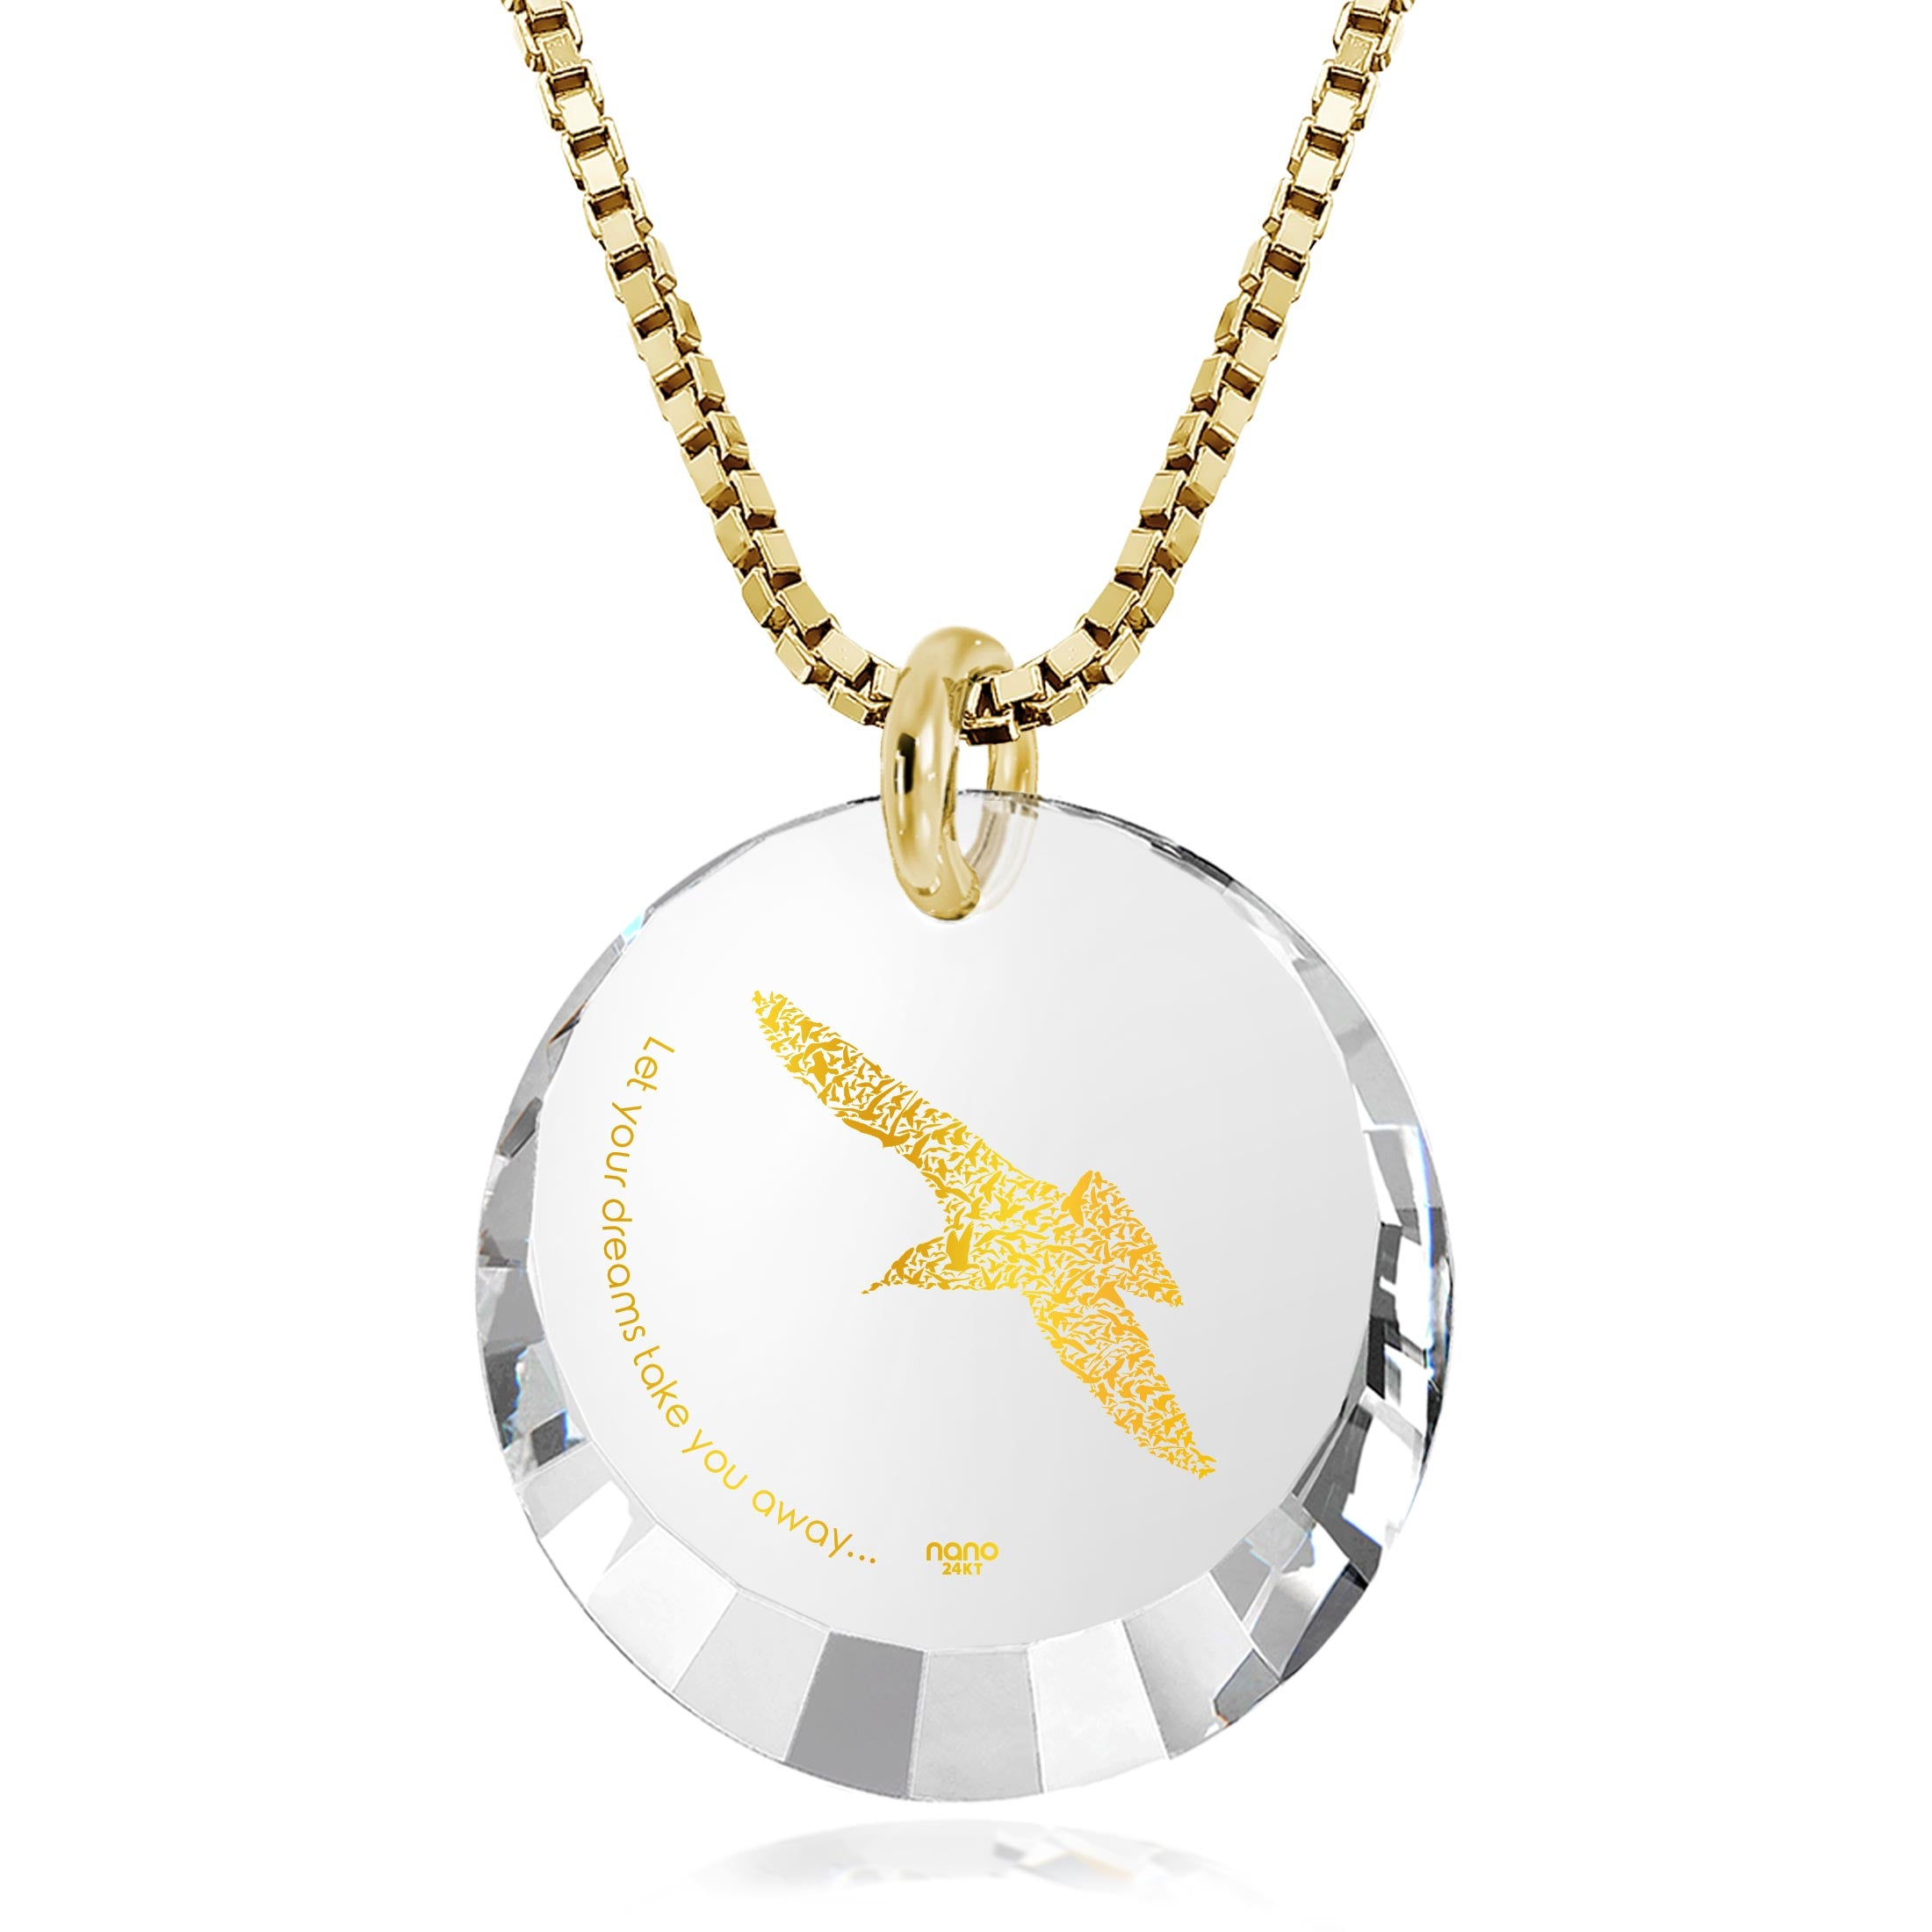 "Inspirational Jewelry For Women: ""Let Your Dreams Take You Away"" - Round Facetted CZ 12mm - 14K Gold - Nano Jewelry"